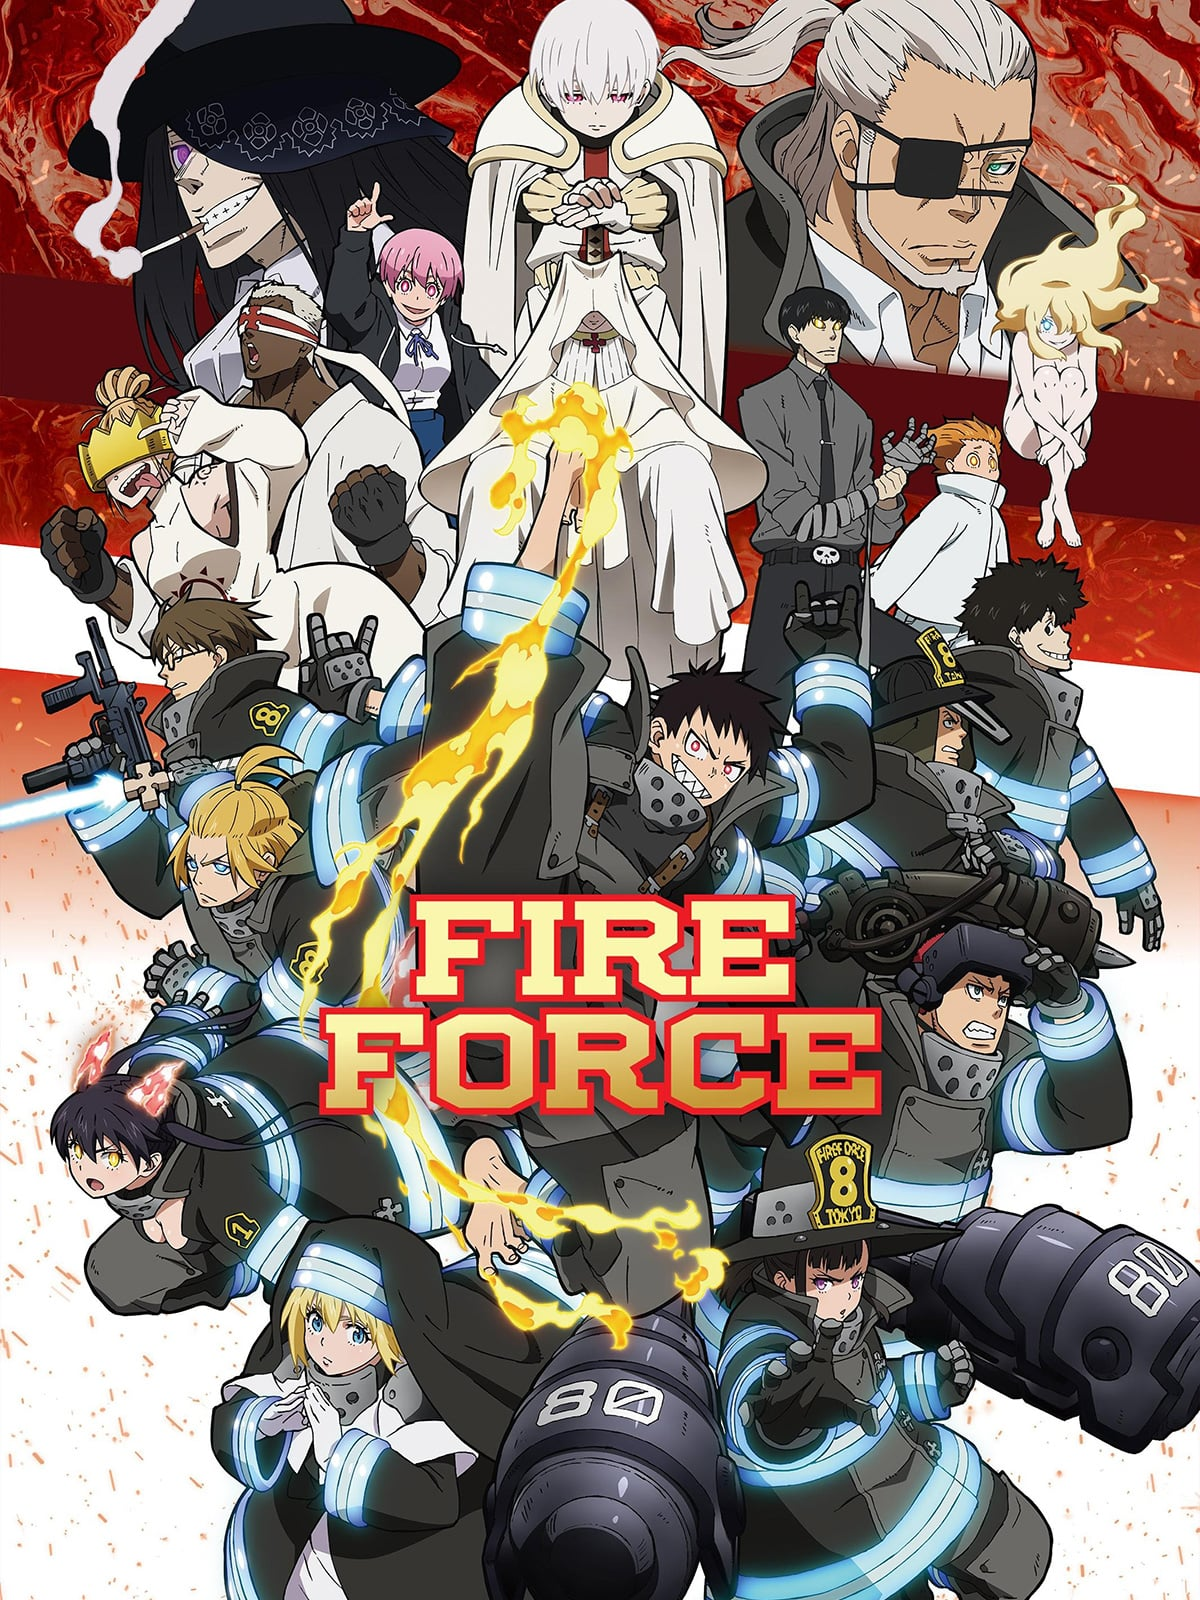 Fire Force Wallpaper Smartphone Kolpaper Awesome Free Hd Wallpapers Select your favorite images and download them for use as wallpaper for your desktop or phone. fire force wallpaper smartphone